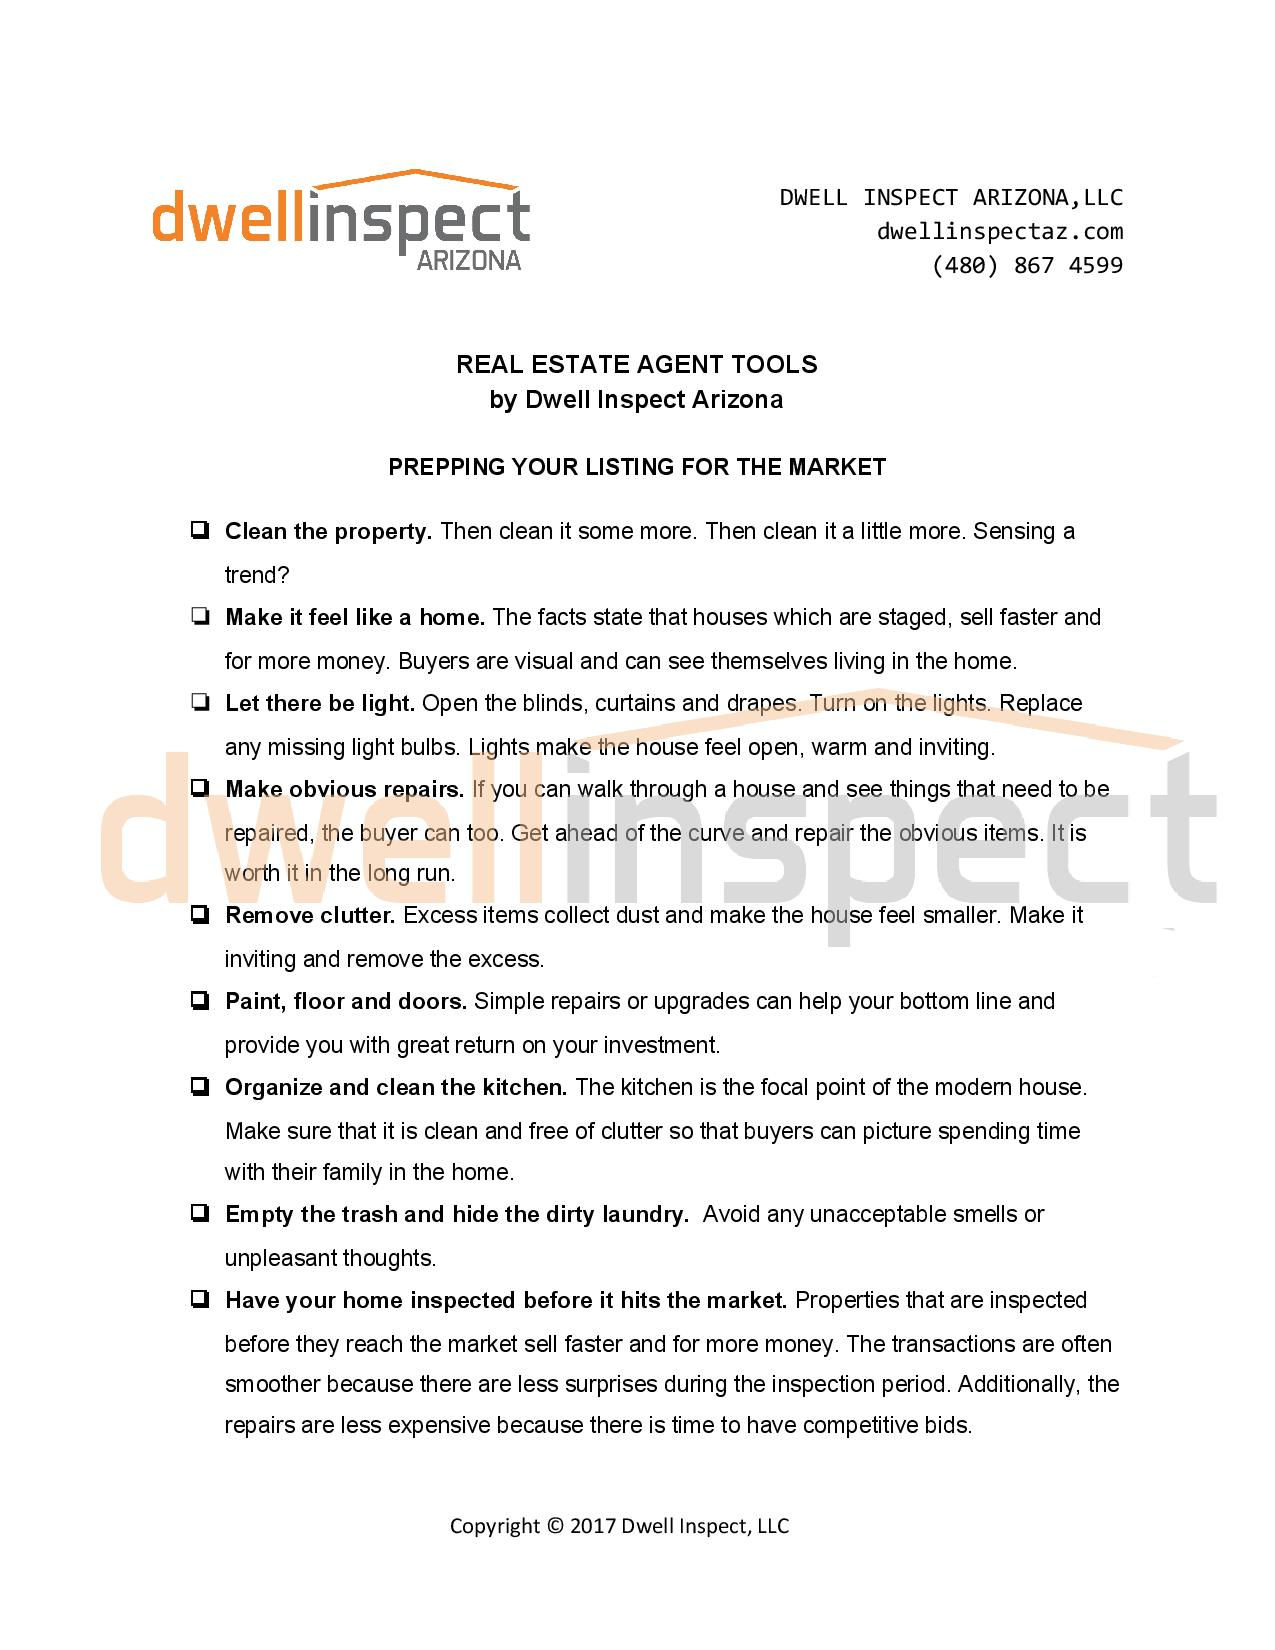 Prepping your listing Dwell Inspect Arizona